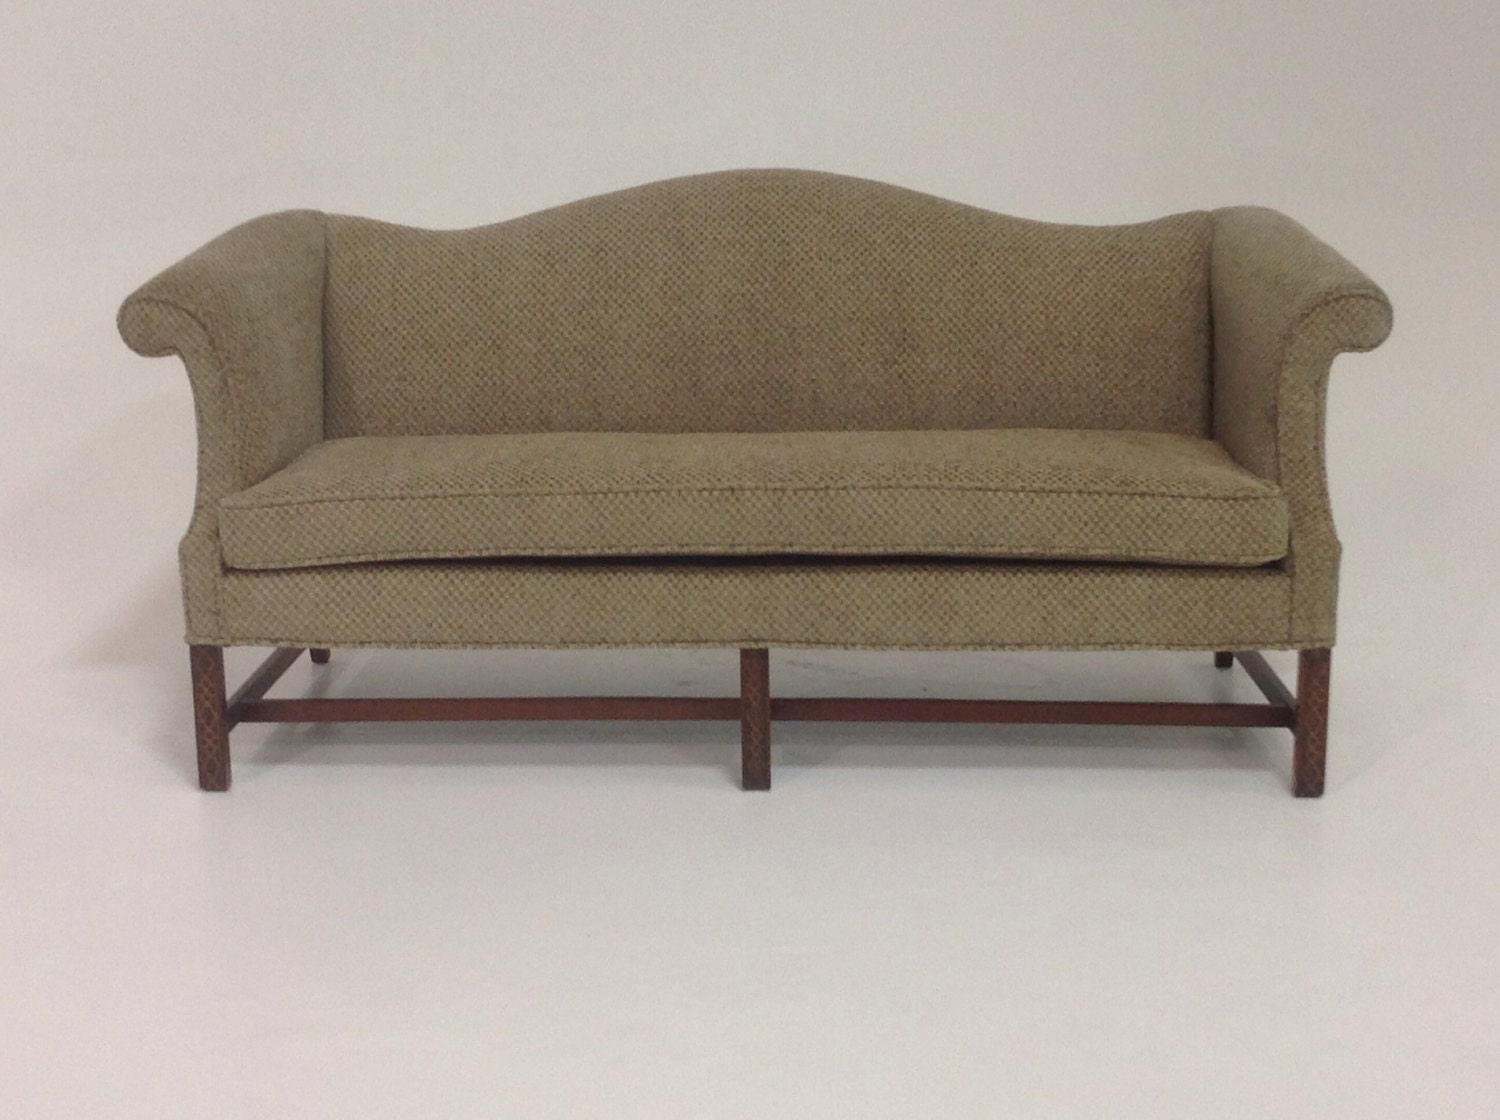 Antique Camel Back Sofa By Designerfwarehouse On Etsy